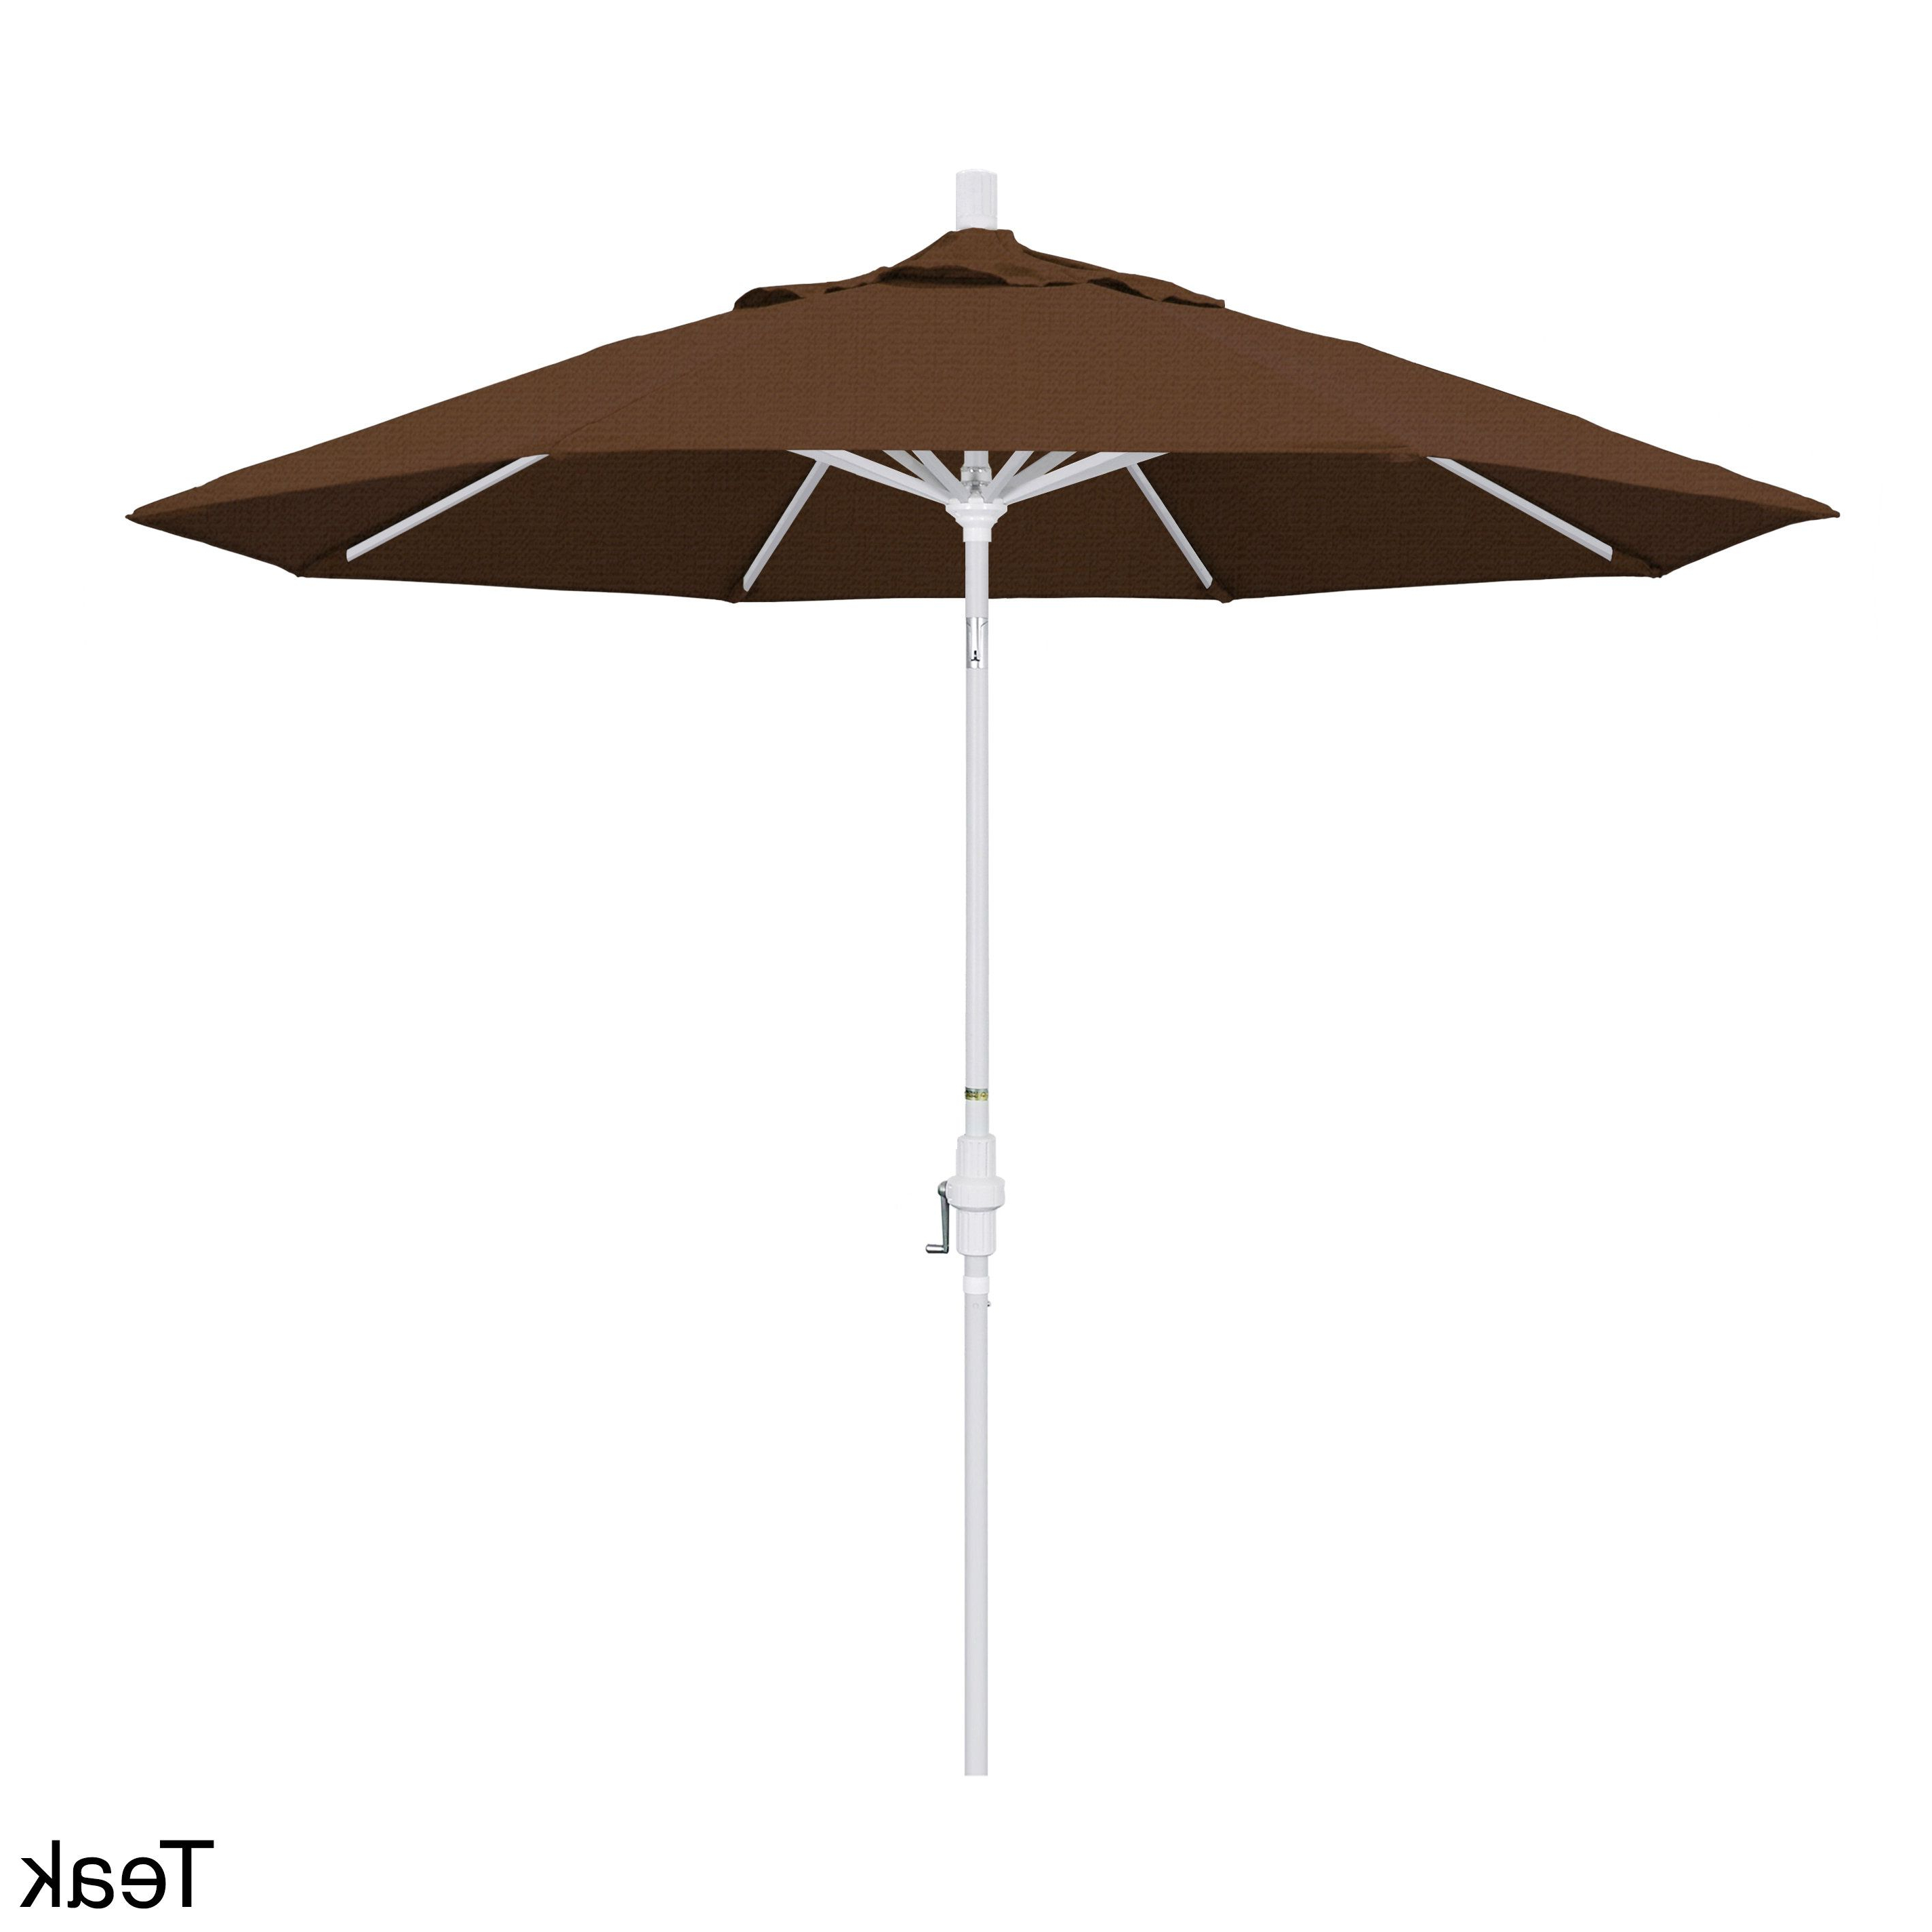 Mraz Market Umbrellas Throughout Famous California Umbrella 9' Rd. Market Umbrella, Deluxe Crank Lift With (Gallery 14 of 20)